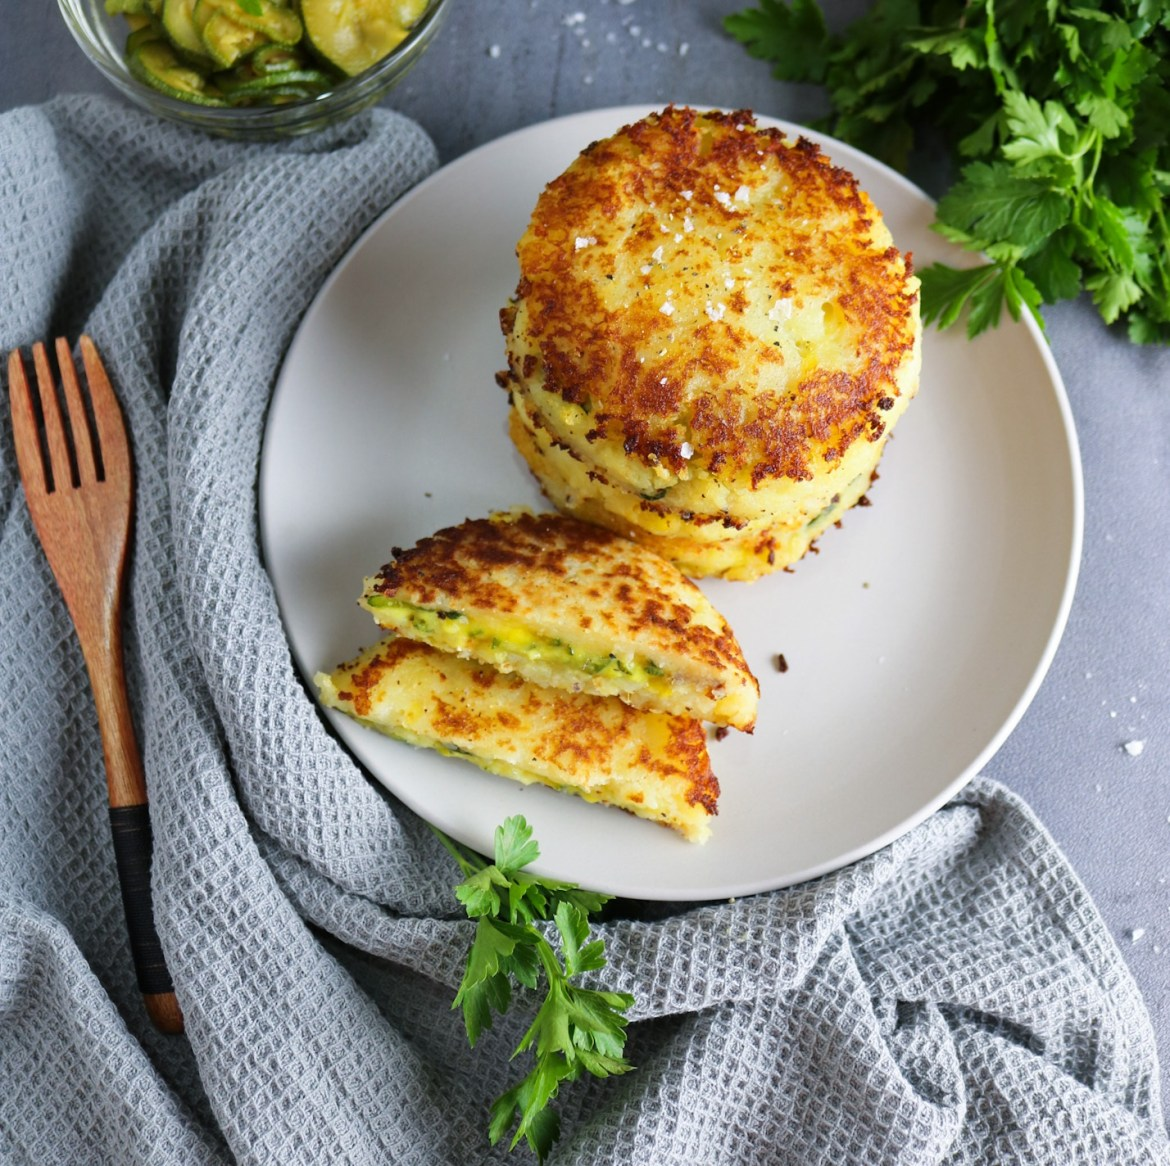 Courgette and Potato Cakes + Vegan Cheese Sauce